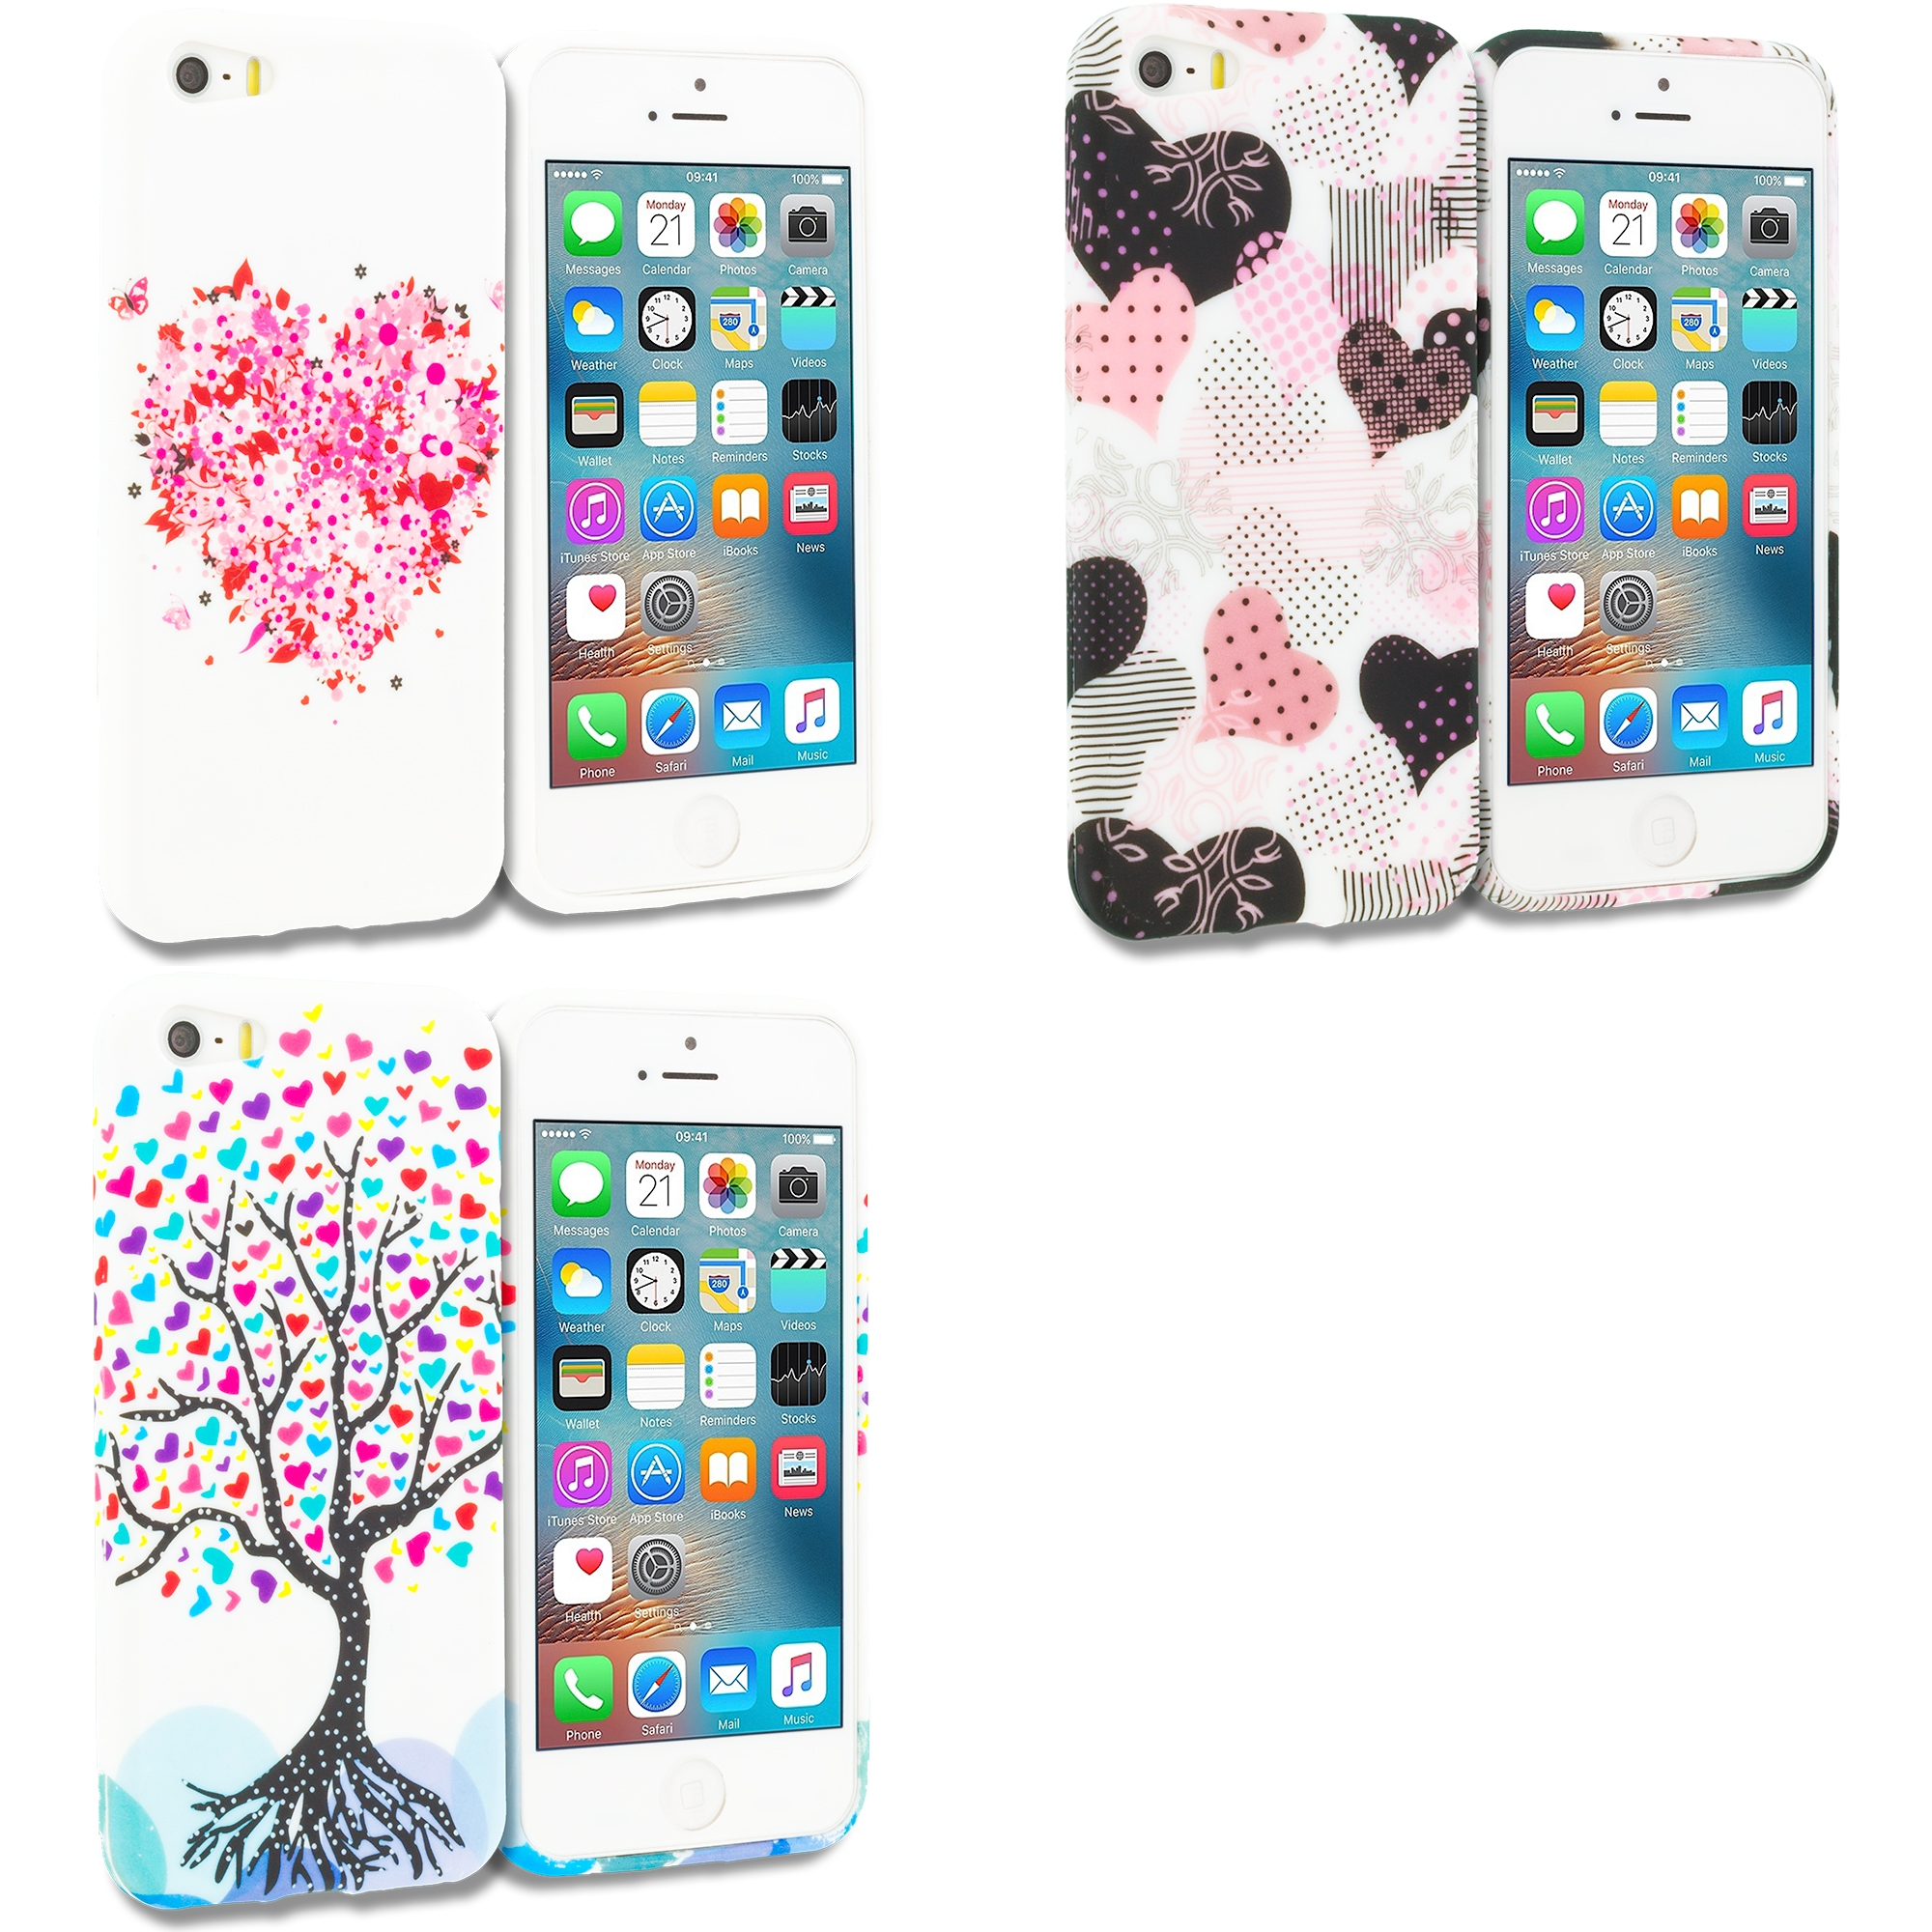 Apple iPhone 5 Combo Pack : Hearts Full of Flowers on White TPU Design Soft Rubber Case Cover